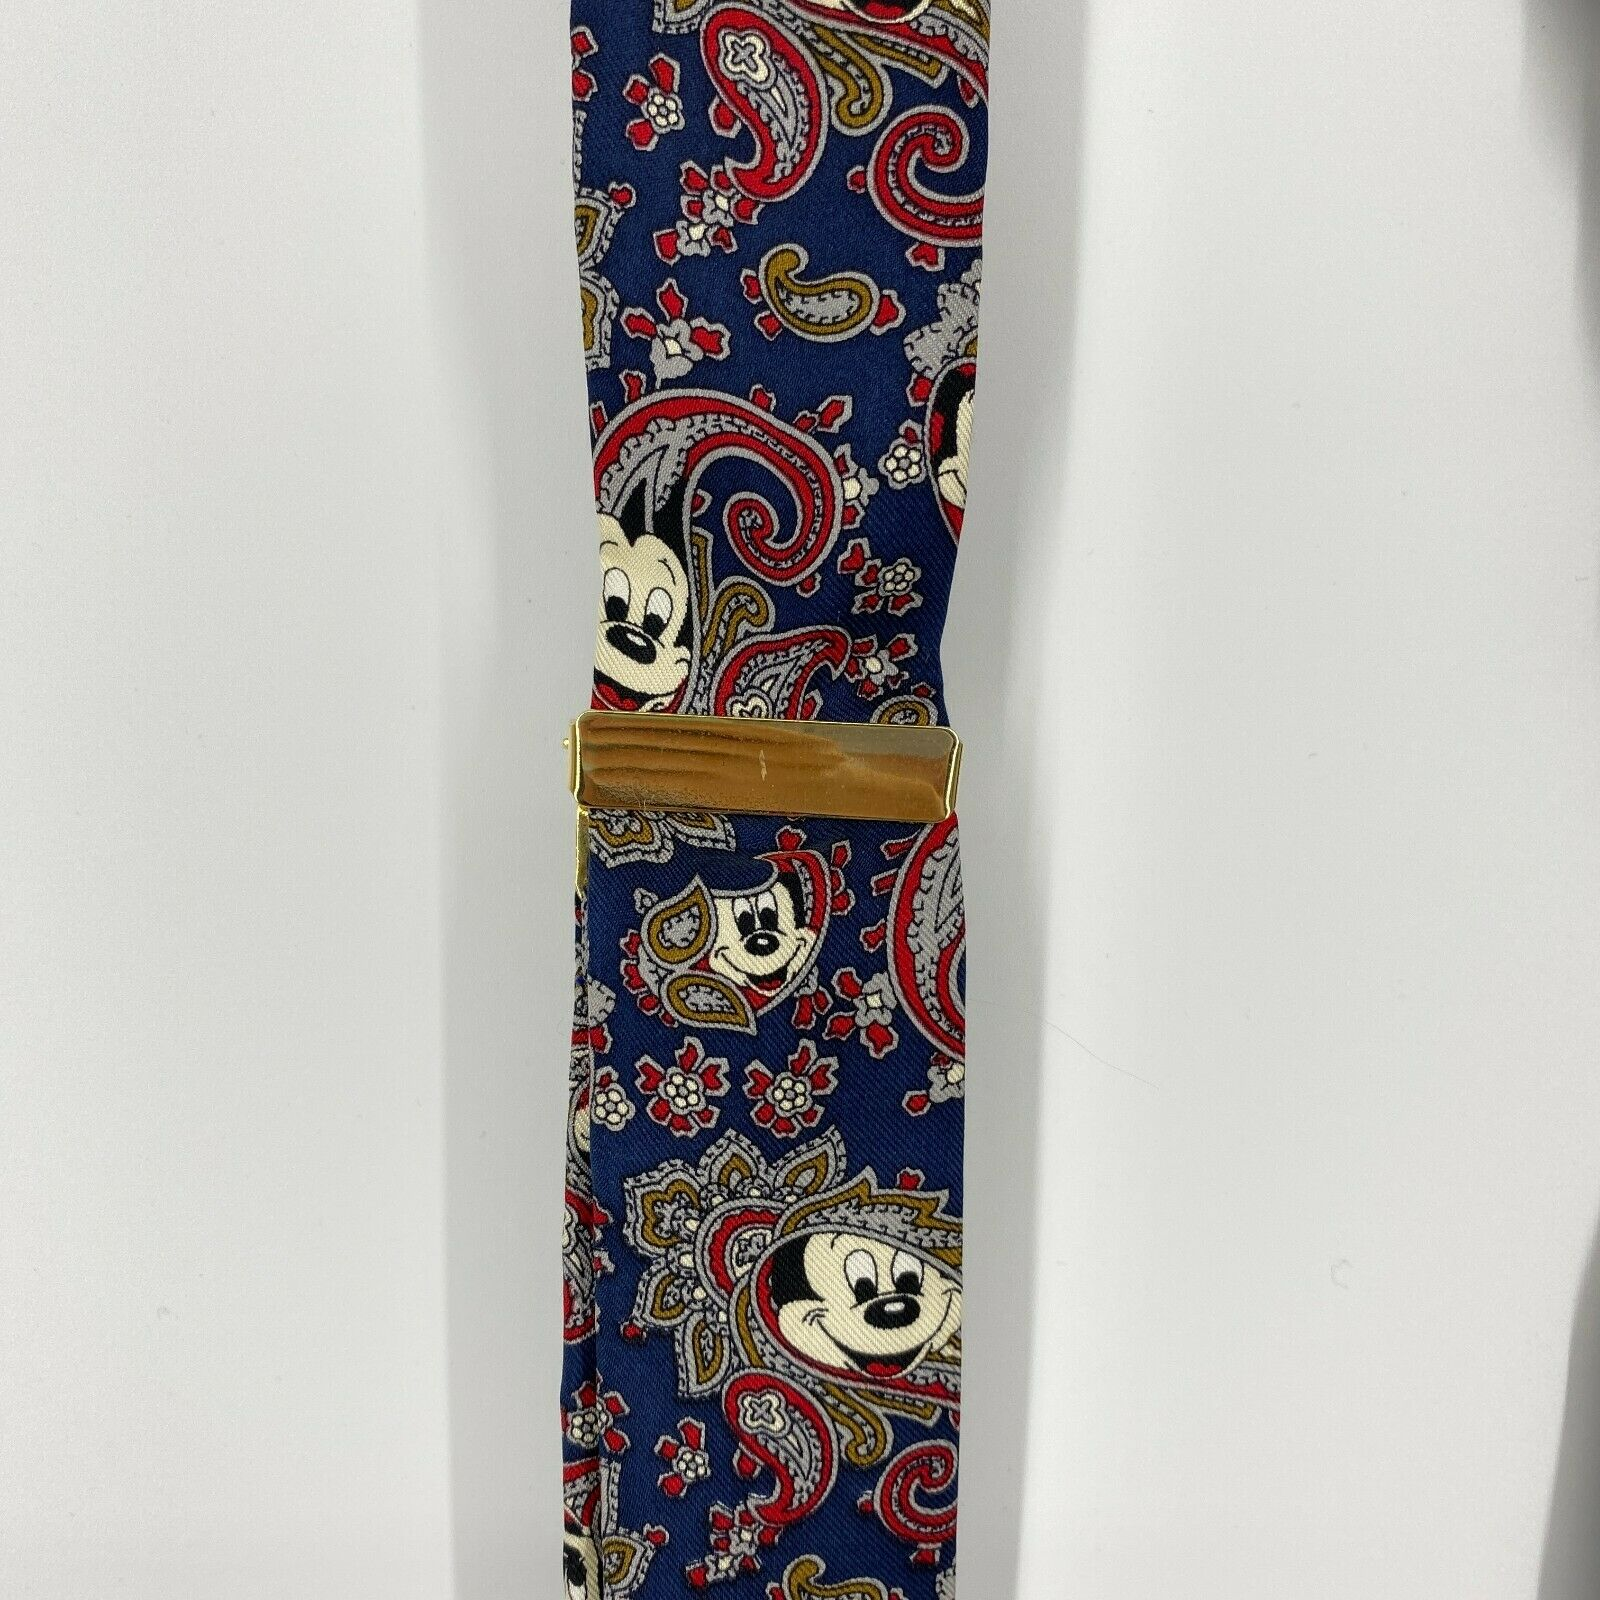 Balancine The Tie Works Suspenders Mickey Mouse Disney Blue Red Paisley